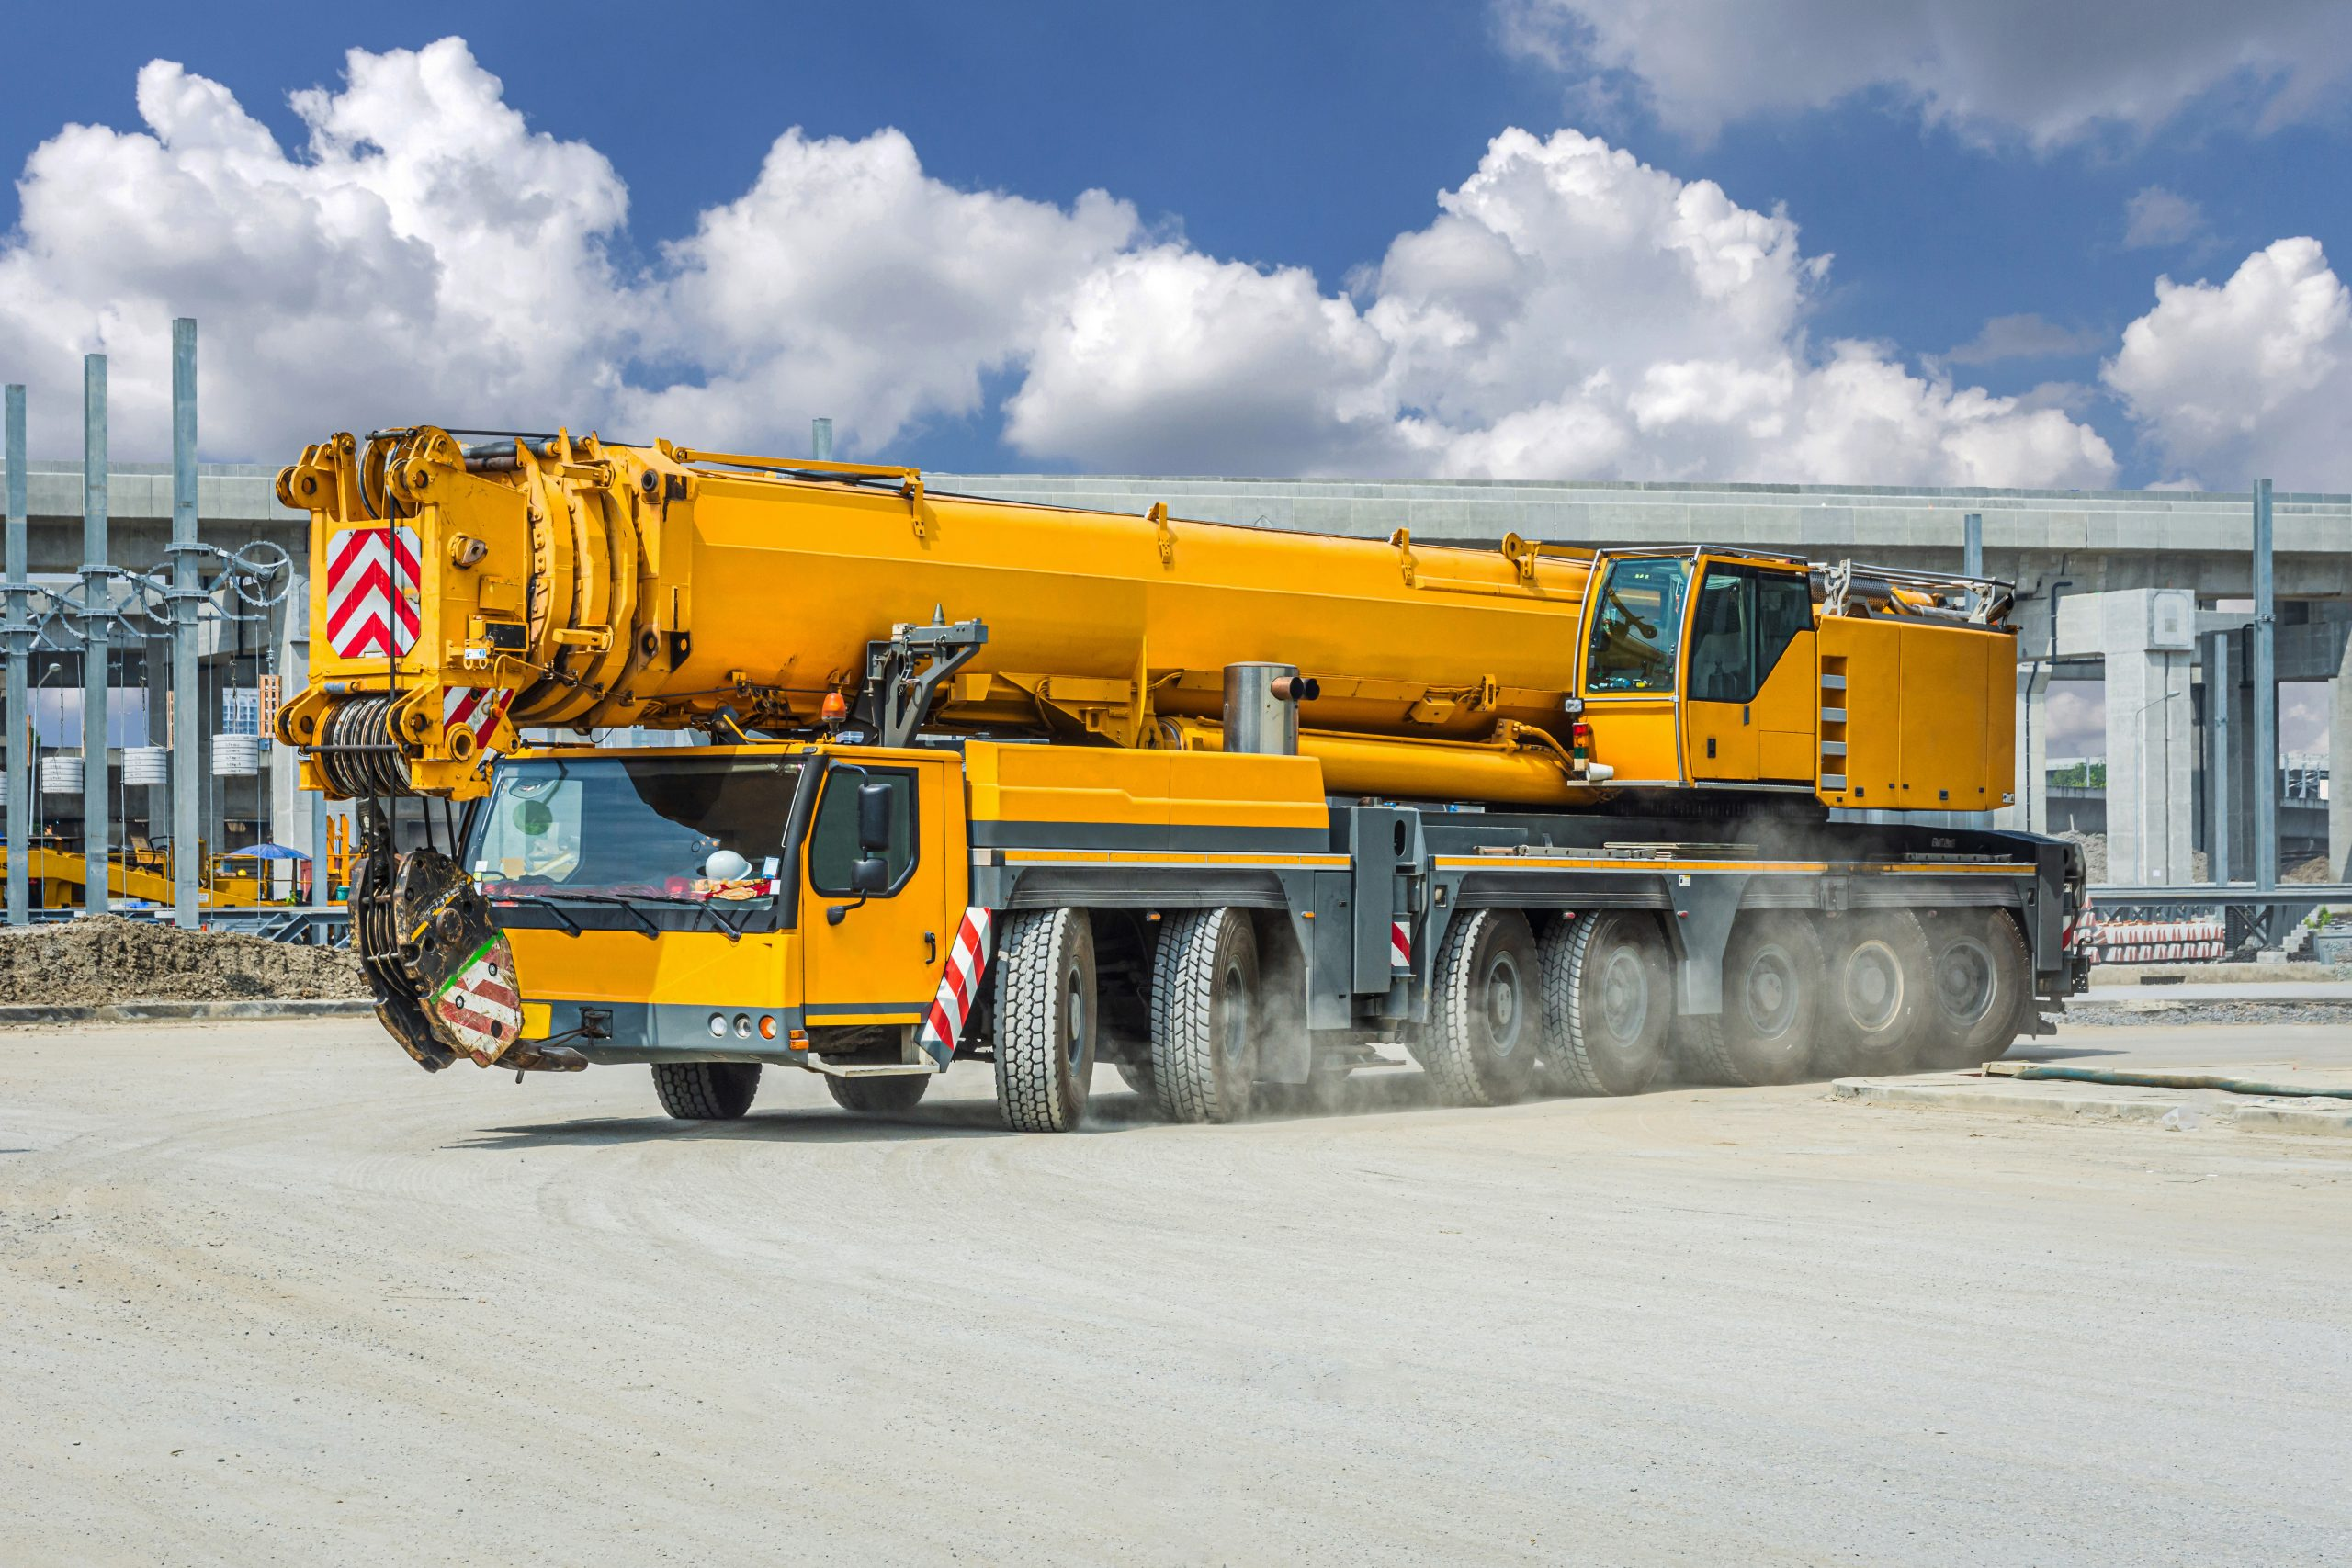 Mobile crane with cloudy sky